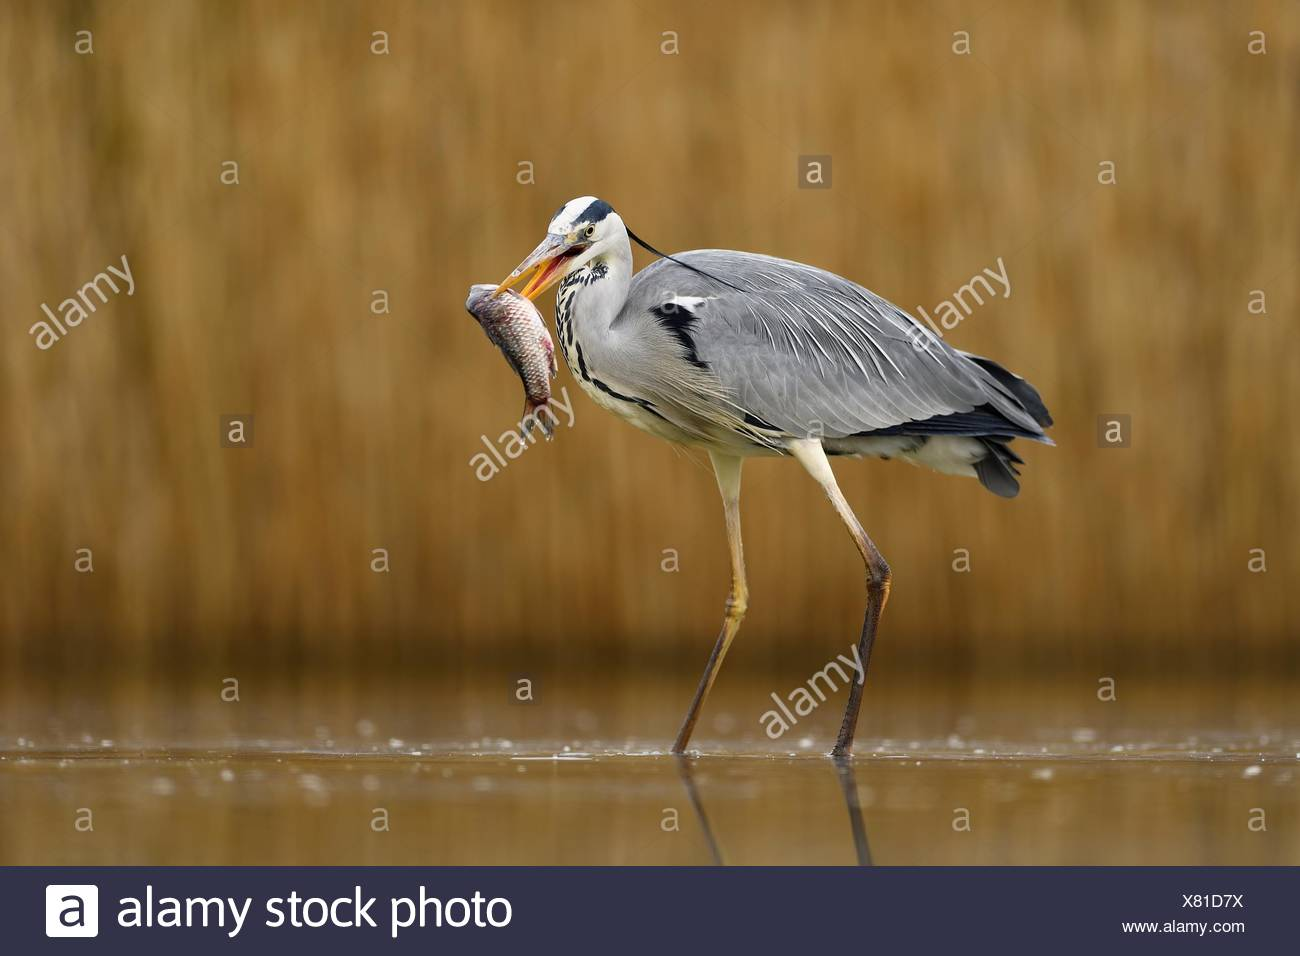 Grey heron (Ardea cinerea), stands in the water with prey fish in the beak, National Park Kiskunsag, Hungary - Stock Image